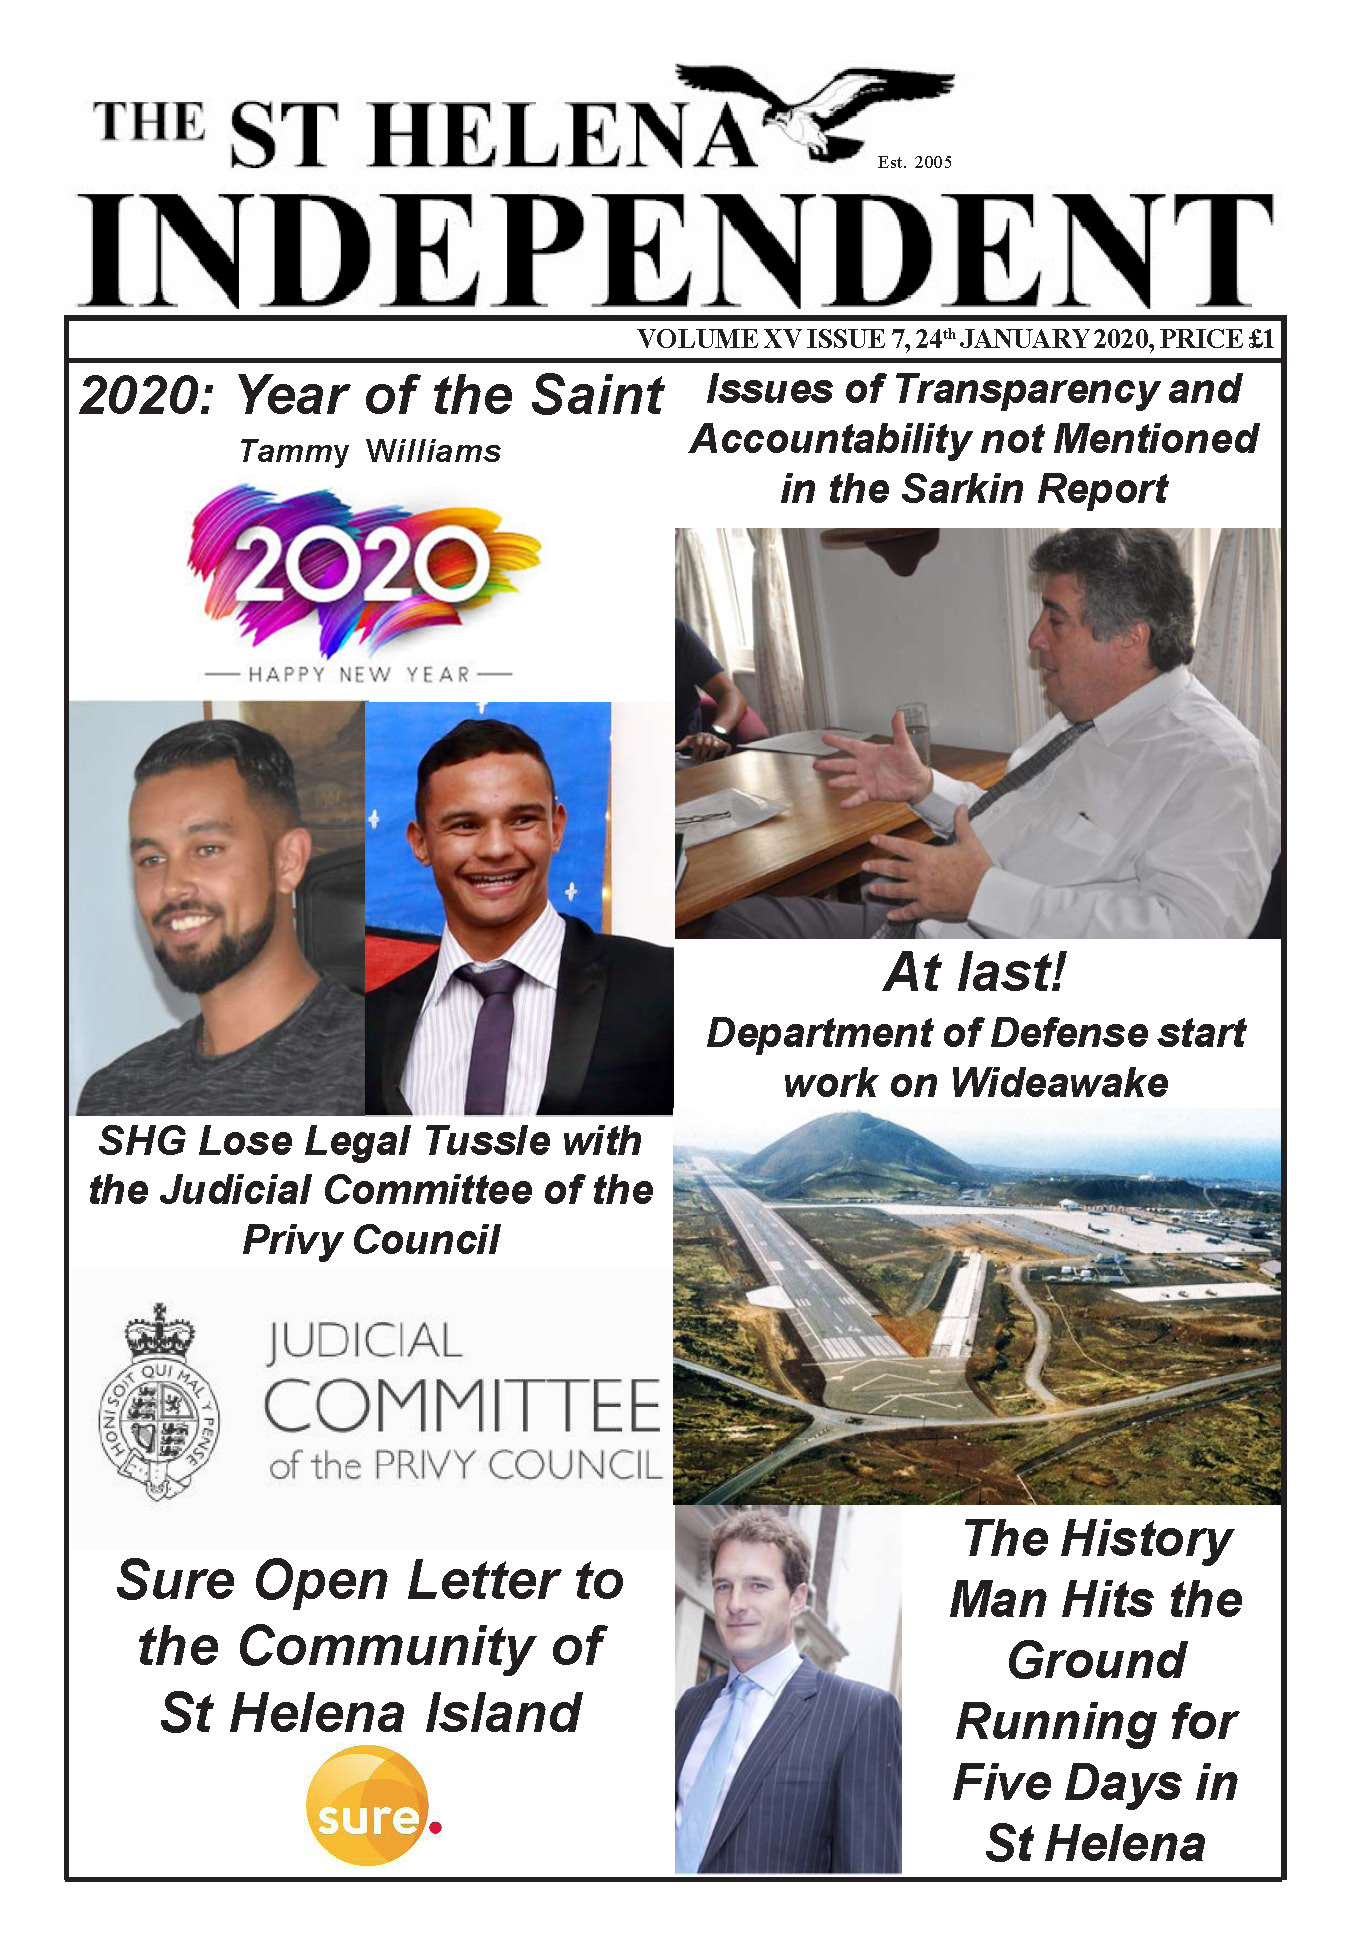 St Helena Independent 20200124